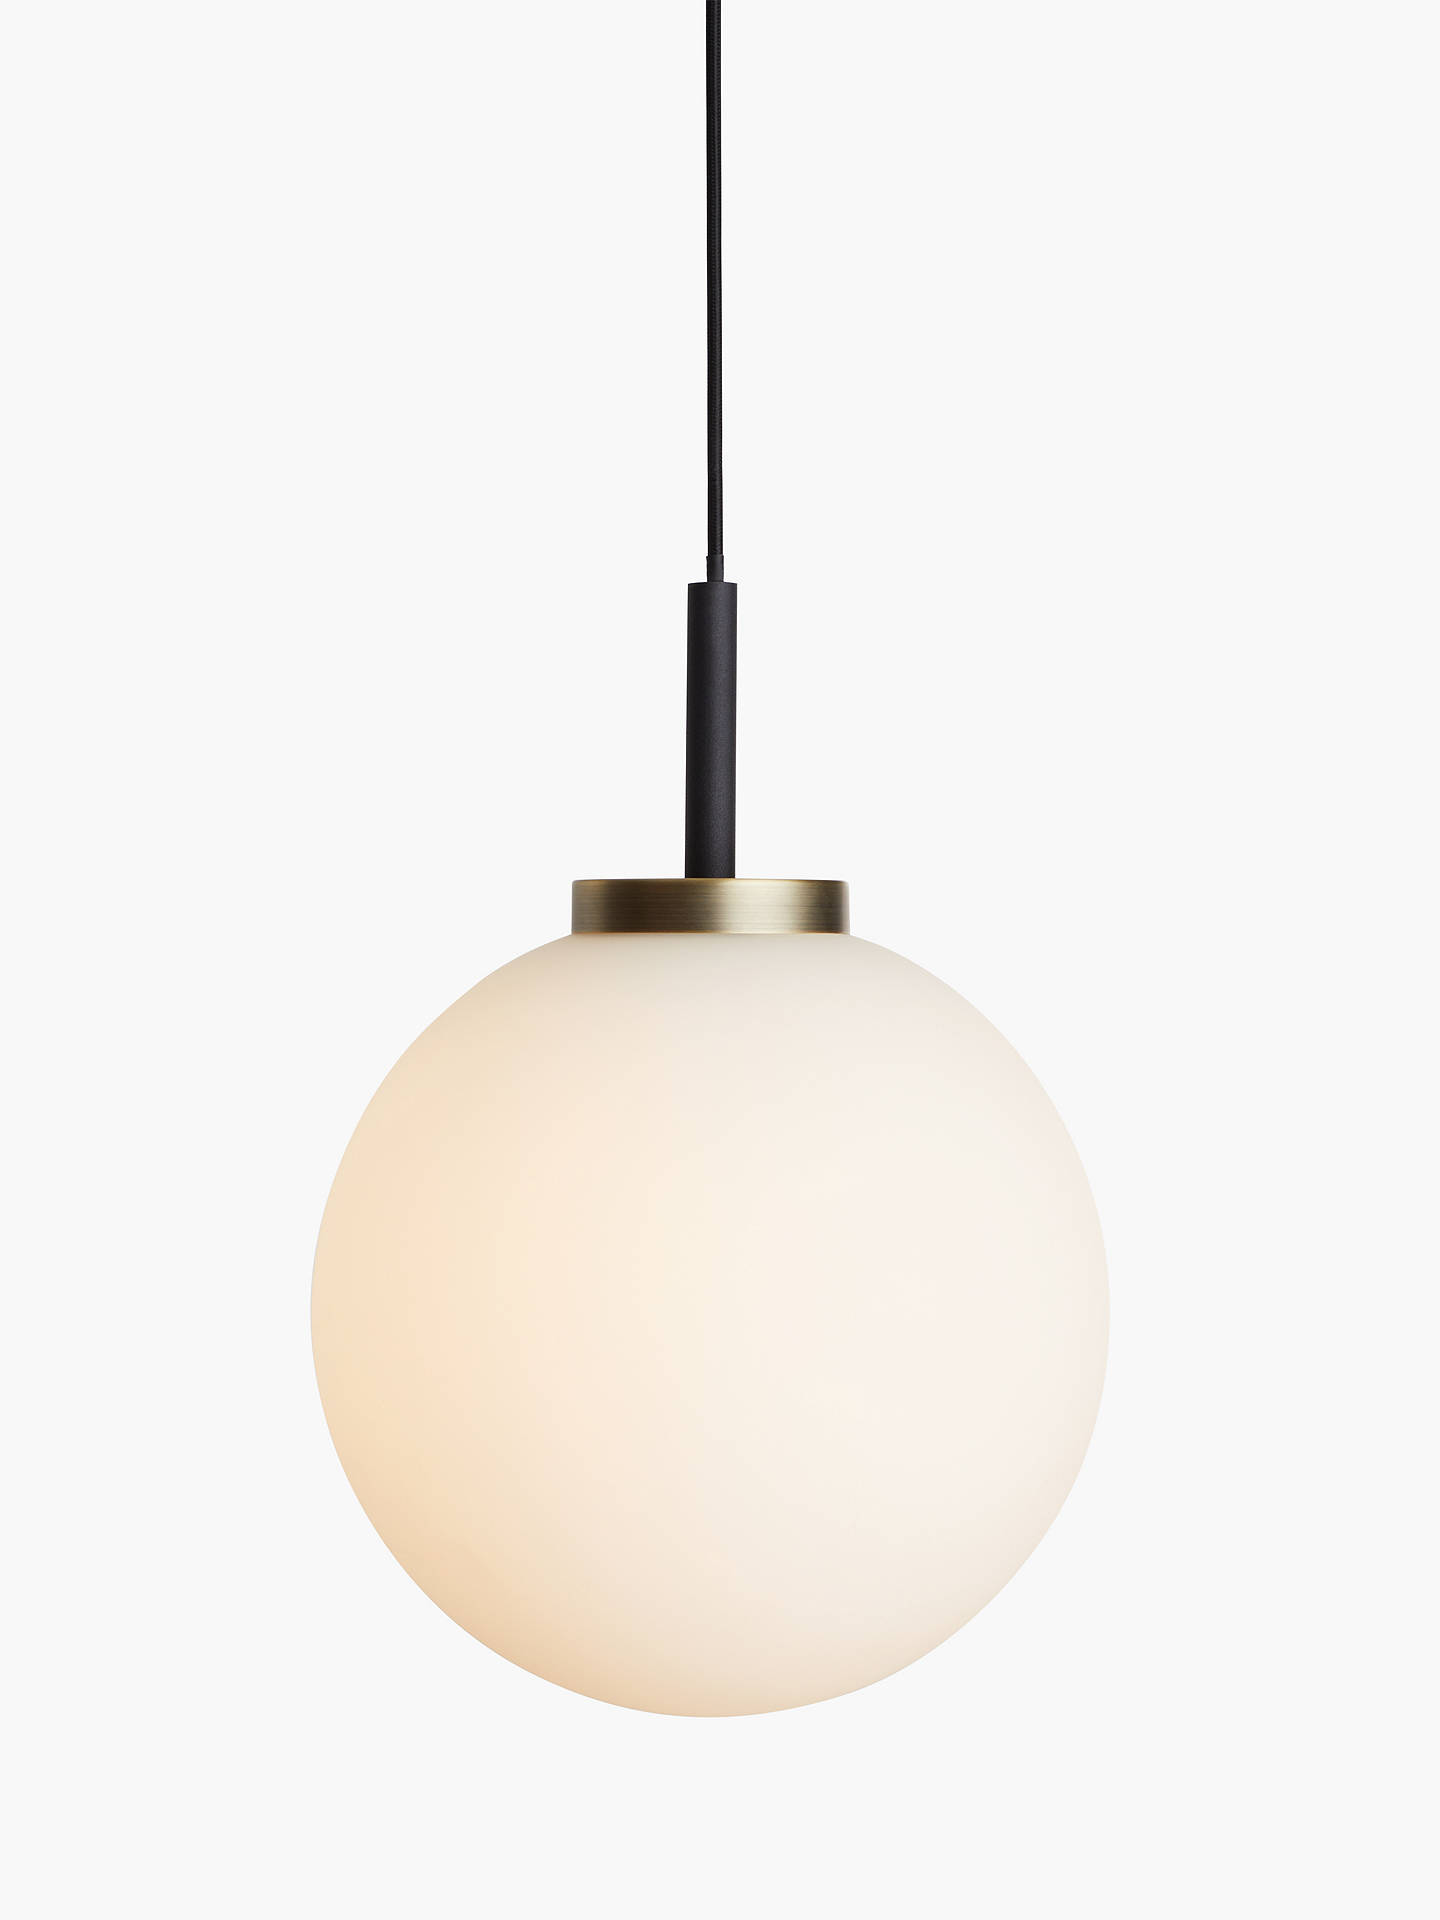 John Lewis & Partners Matinee Globe Ceiling Light, Black/Brass by John Lewis & Partners